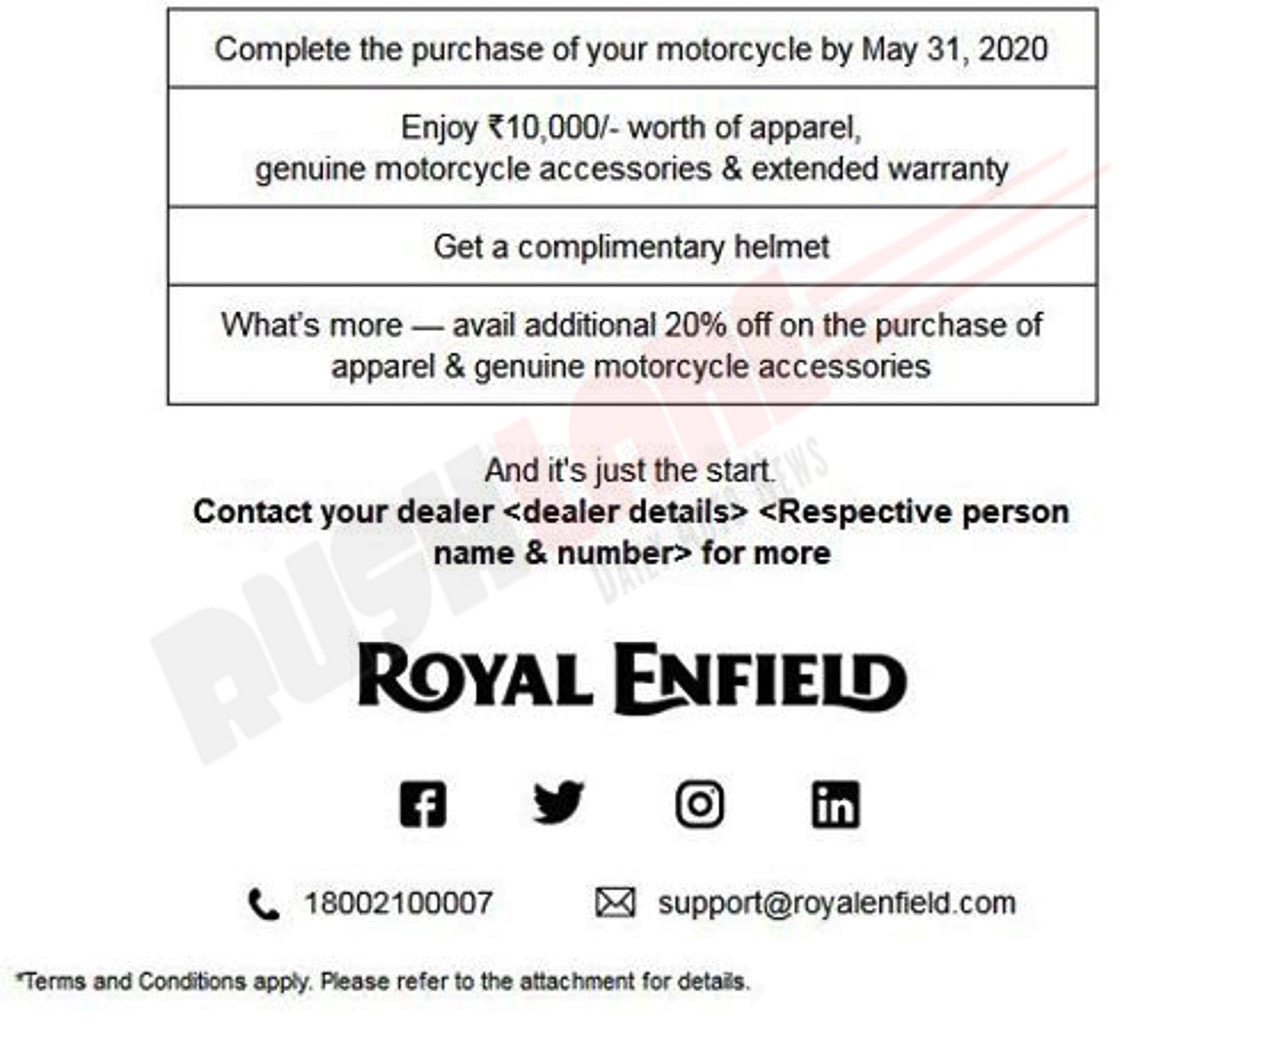 Royal Enfield Free accessories offer